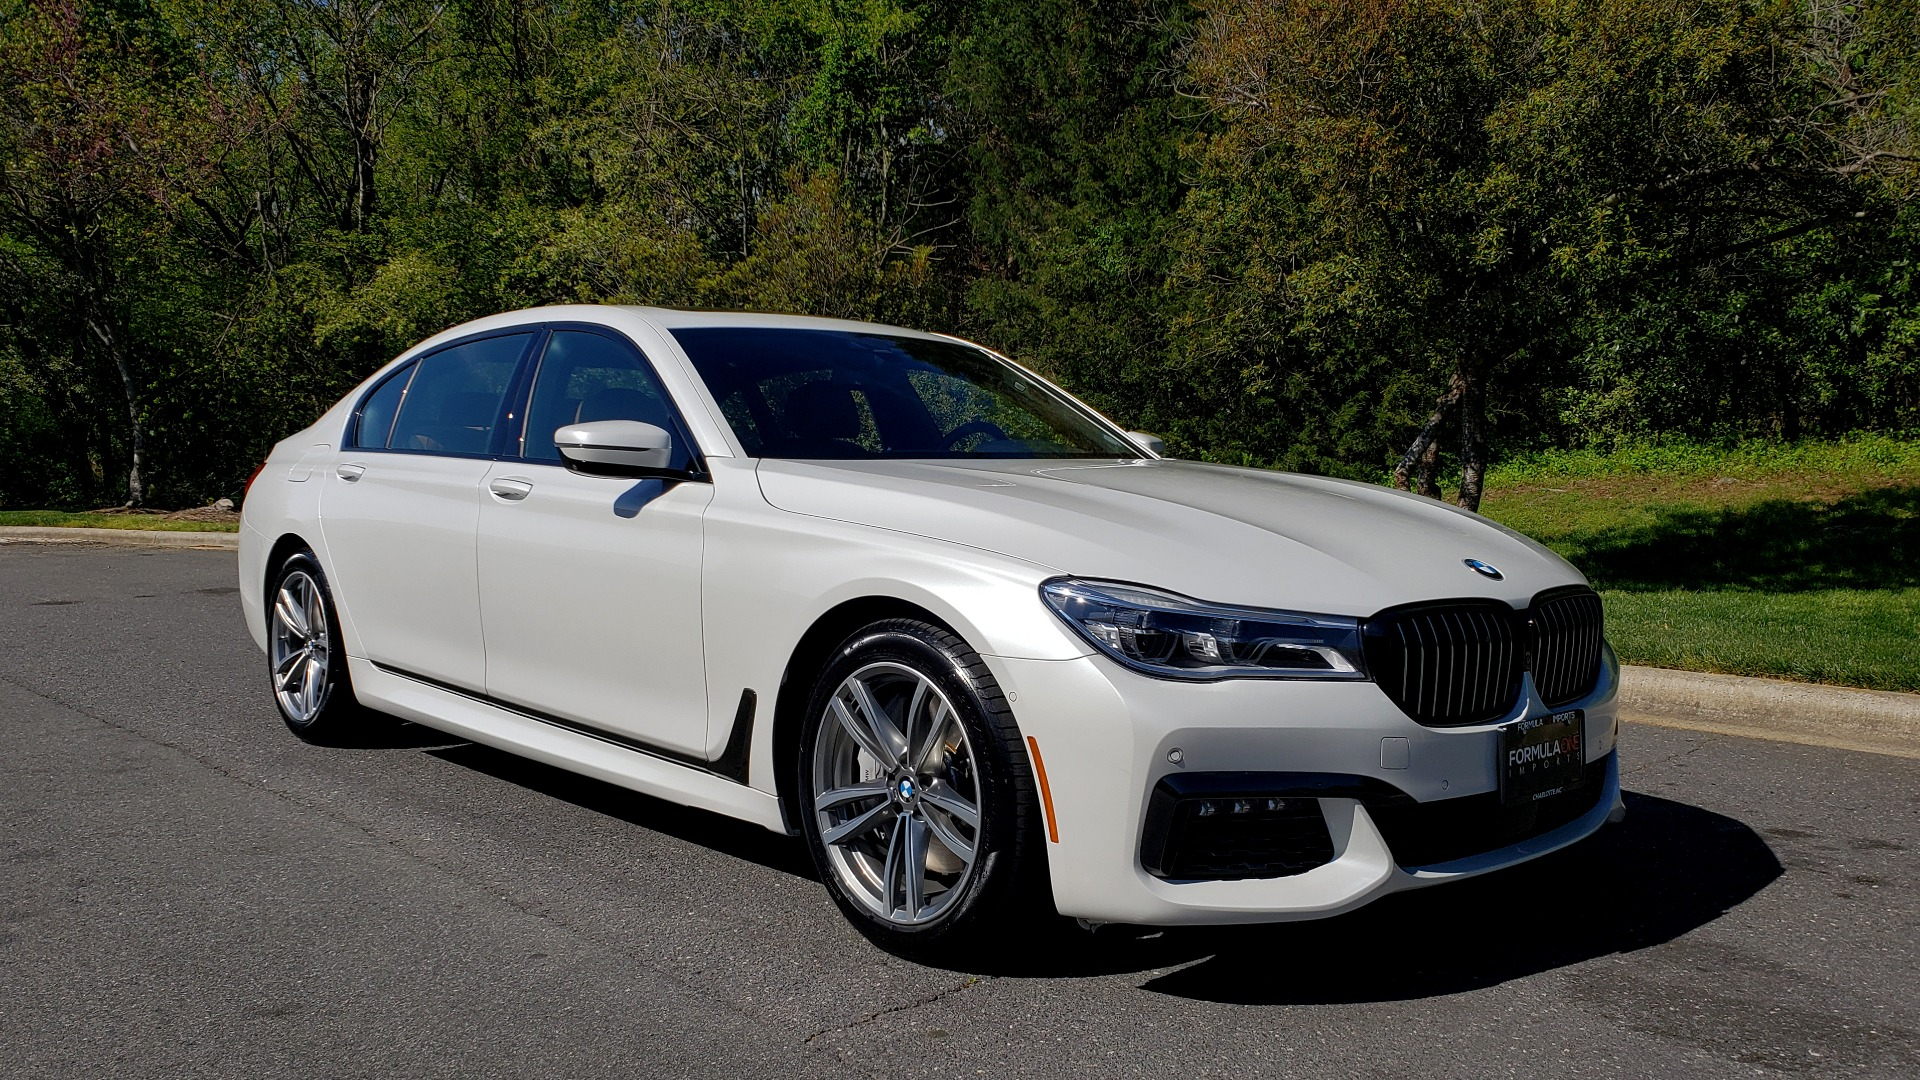 Used 2017 BMW 7 SERIES 750I XDRIVE / M-SPORT / EXEC PKG / DRVR ASST PLUS II / CLD WTHR for sale $48,495 at Formula Imports in Charlotte NC 28227 5